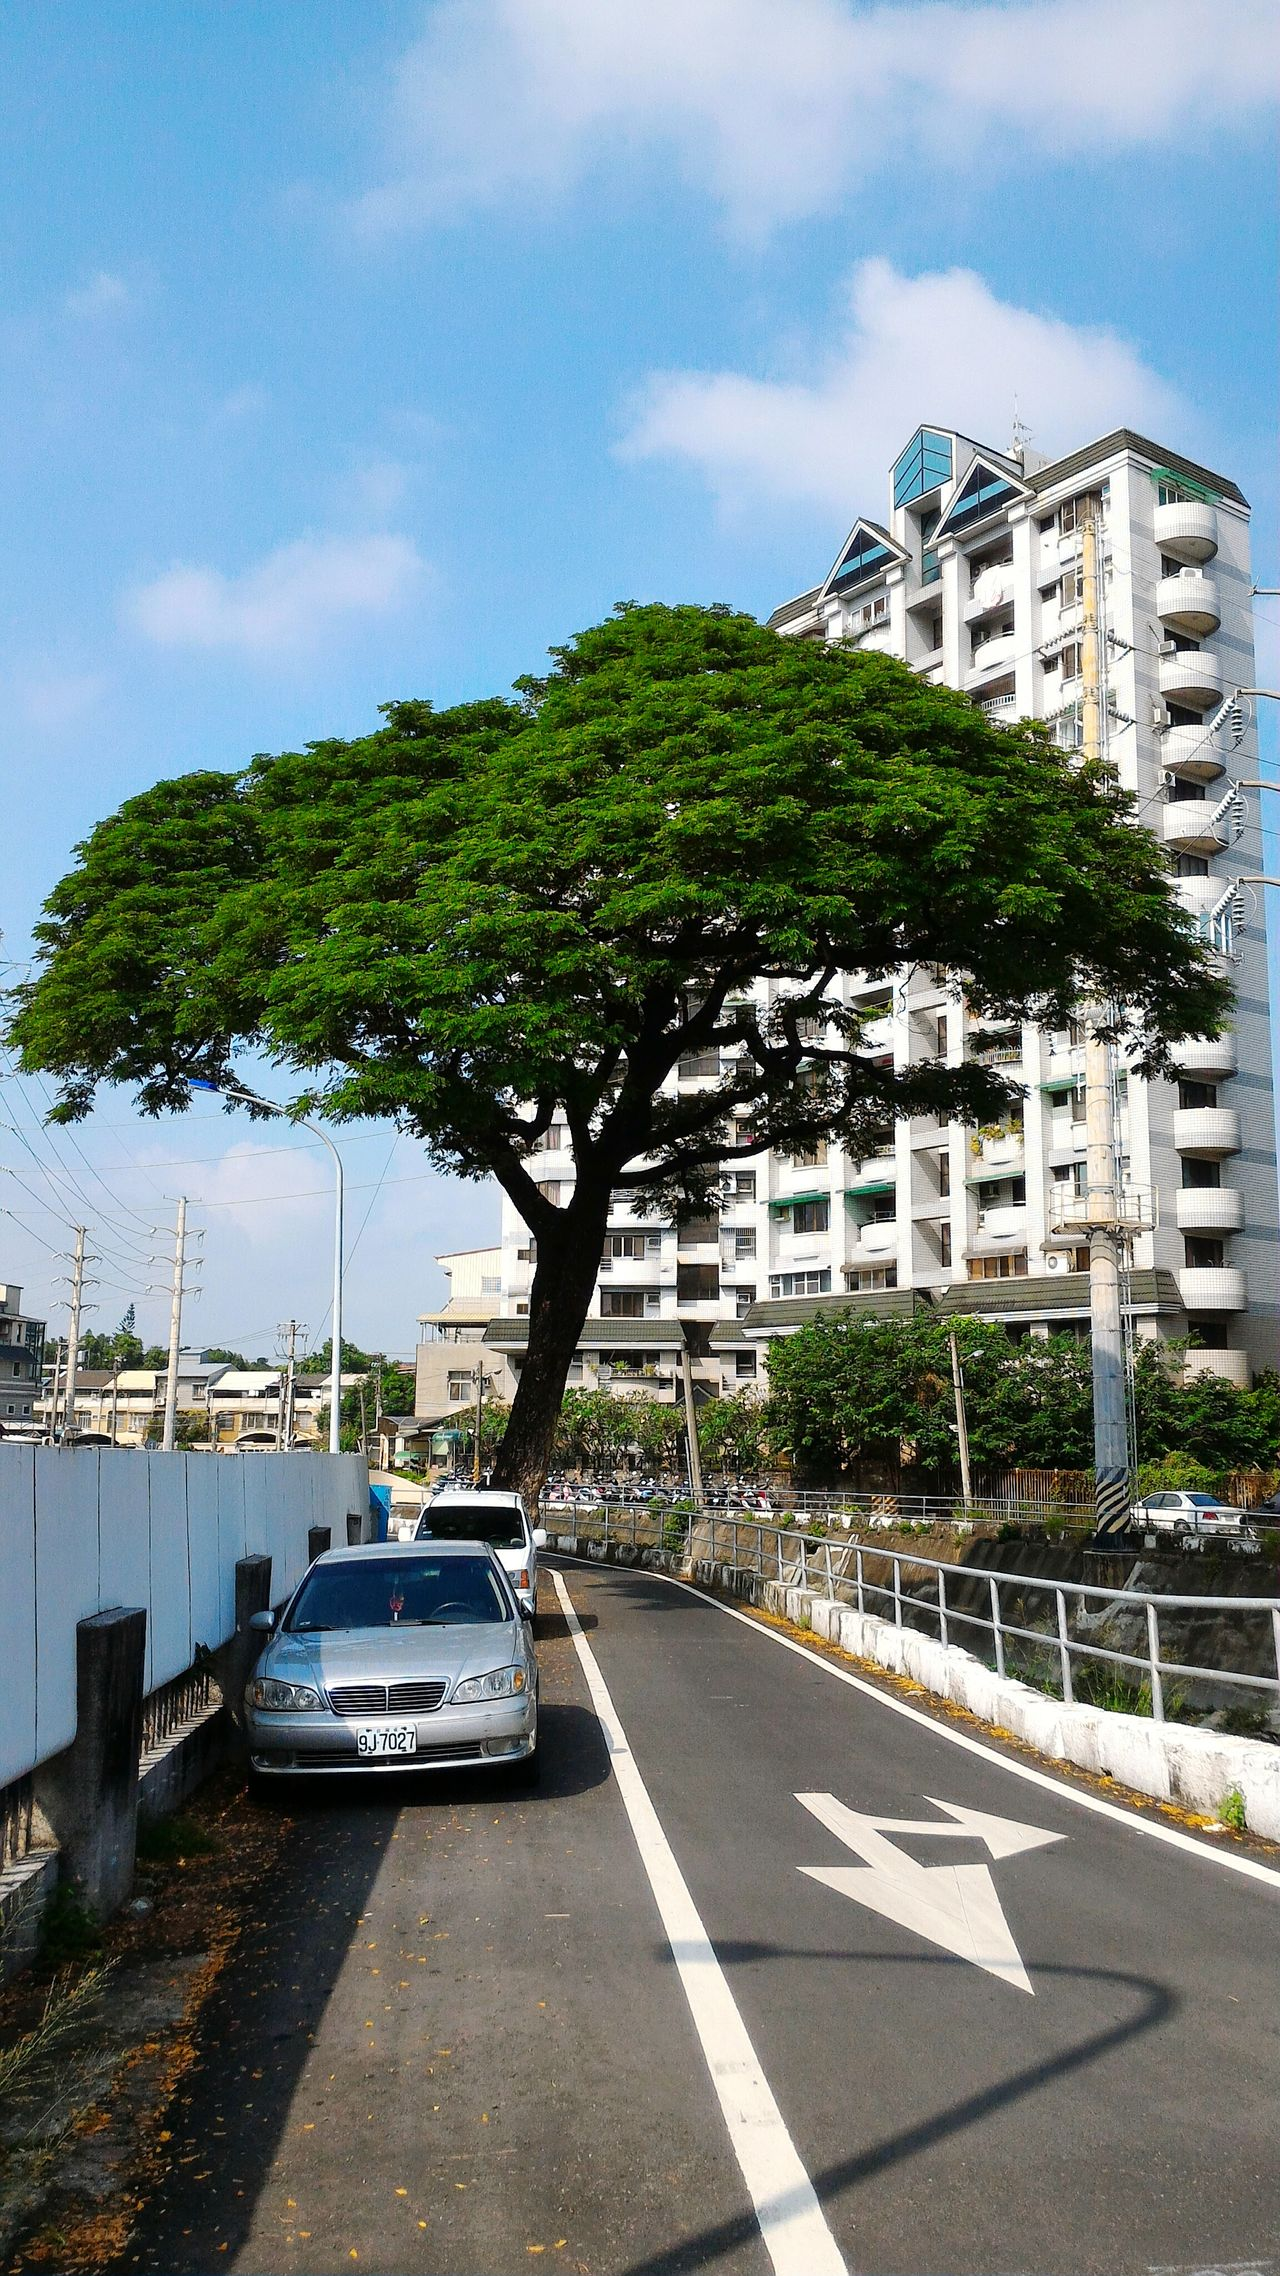 橫在馬路上的大樹 Tree Bulesky Sky And Clouds On The Road Street Photography Pingtung City Taiwan